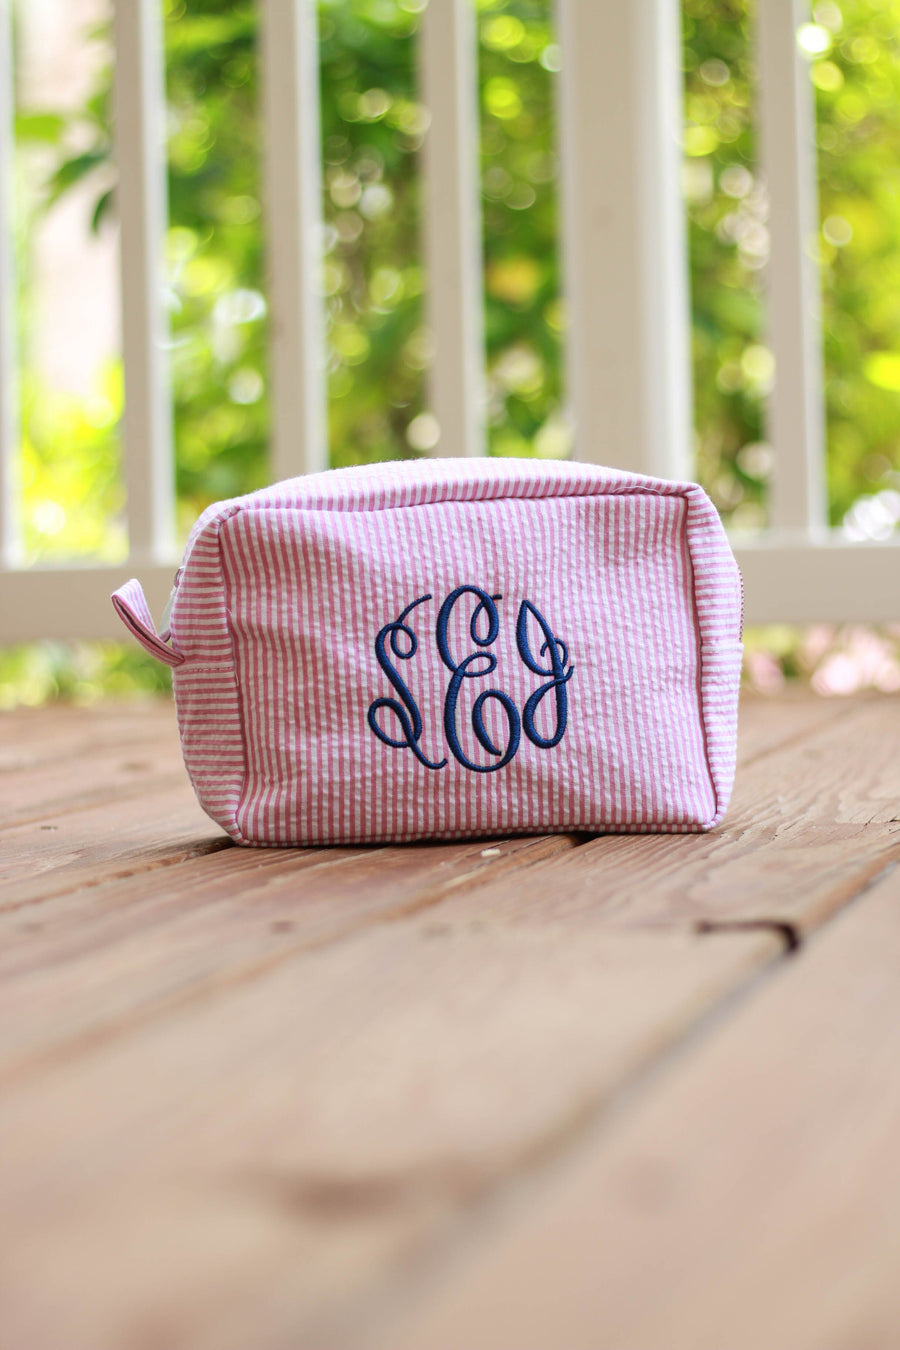 Monogrammed Seersucker Cosmetic bag, Accessories, domil, - Sunny and Southern,